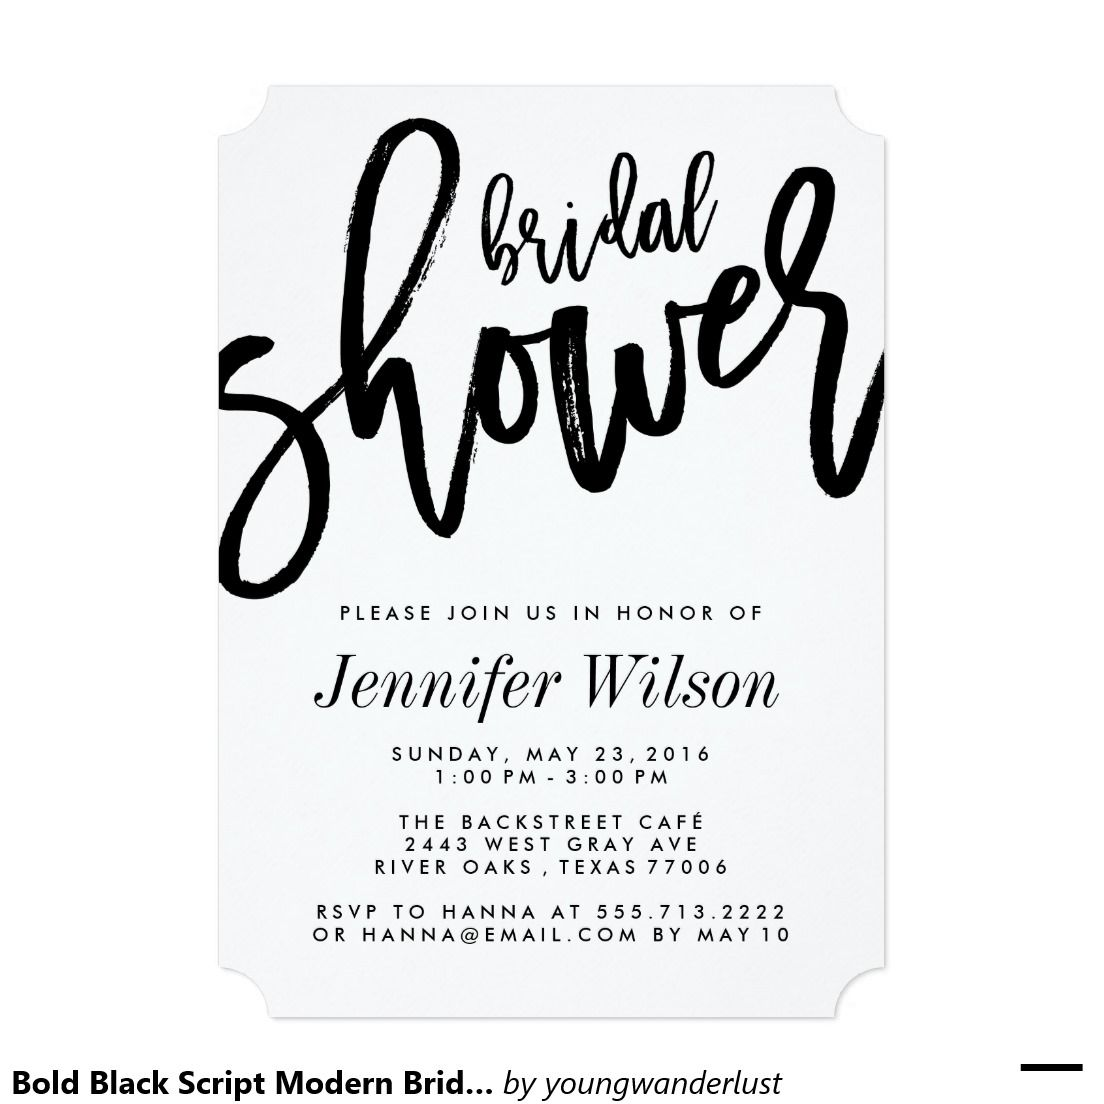 Bold Black Script Modern Bridal Shower Invitations